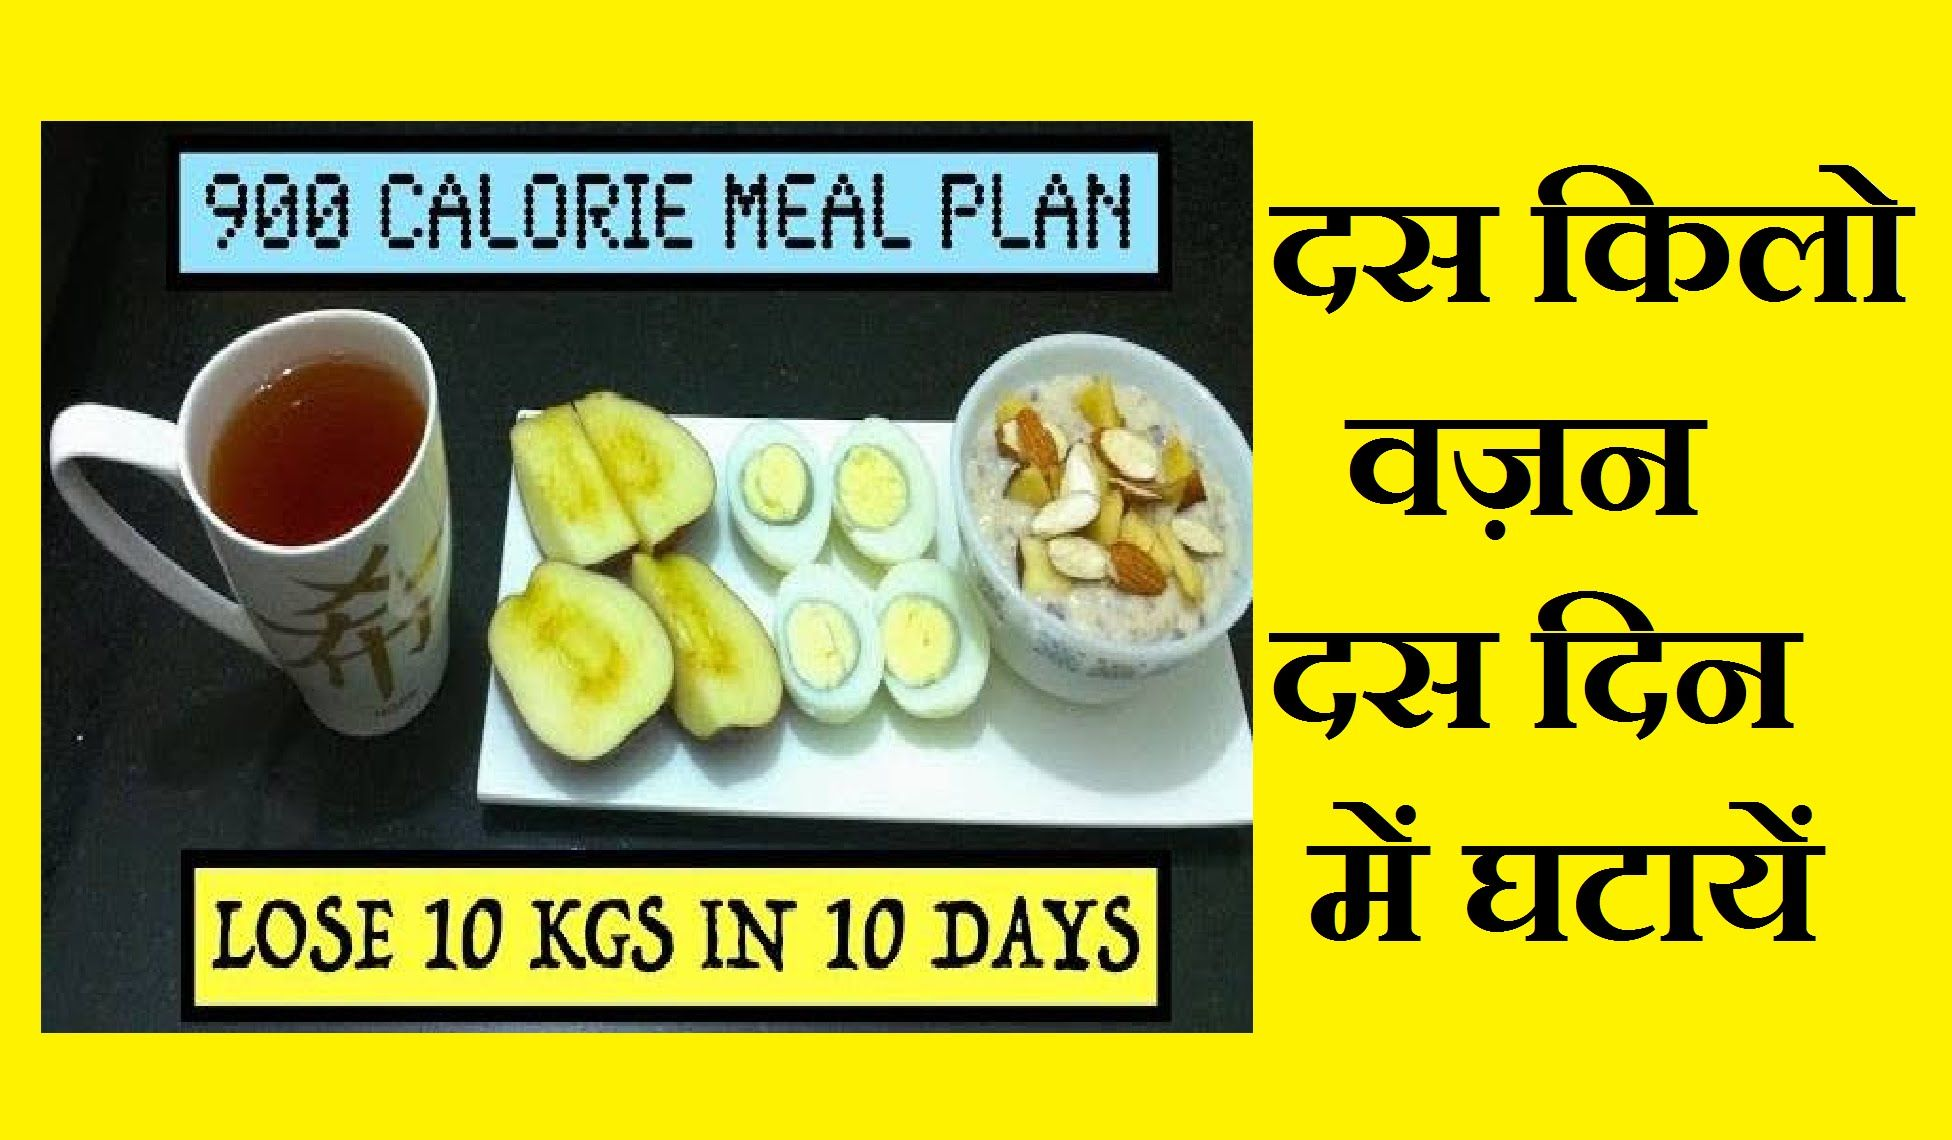 Lose weight diet in hindi lose weight diet how to lose weight lose weight diet in hindi lose weight diet how to lose weight diet doctor how to lose weight quickly and sustainably with no hunger no calorie counting nvjuhfo Image collections